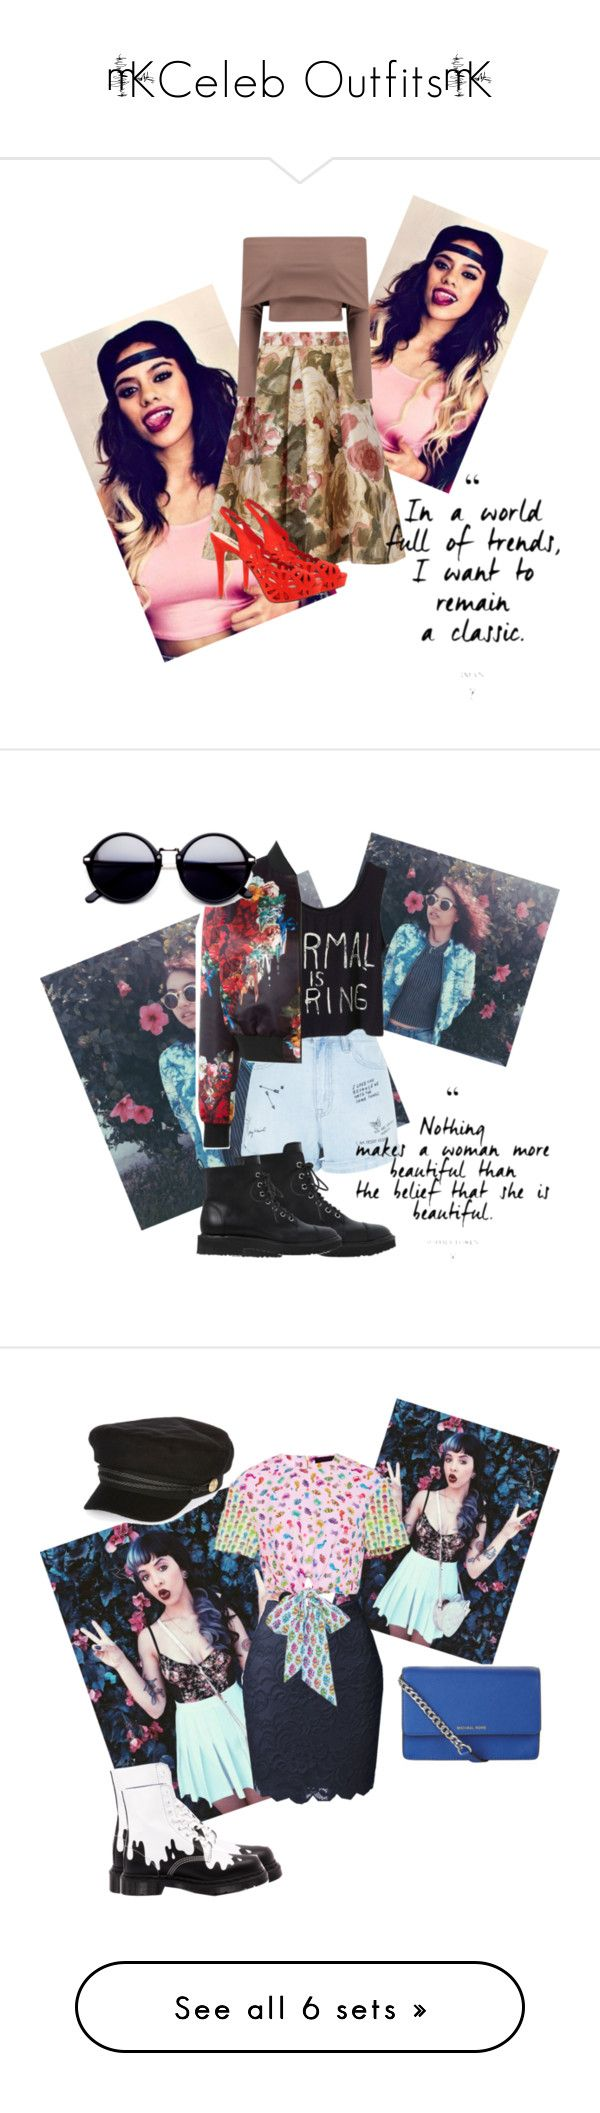 """""""×Celeb Outfits×"""" by petcheetah3 ❤ liked on Polyvore featuring Hansen, Boohoo, GUESS, New Look, Giuseppe Zanotti, Philipp Plein, Dr. Martens, LE3NO, Manish Arora and MICHAEL Michael Kors"""